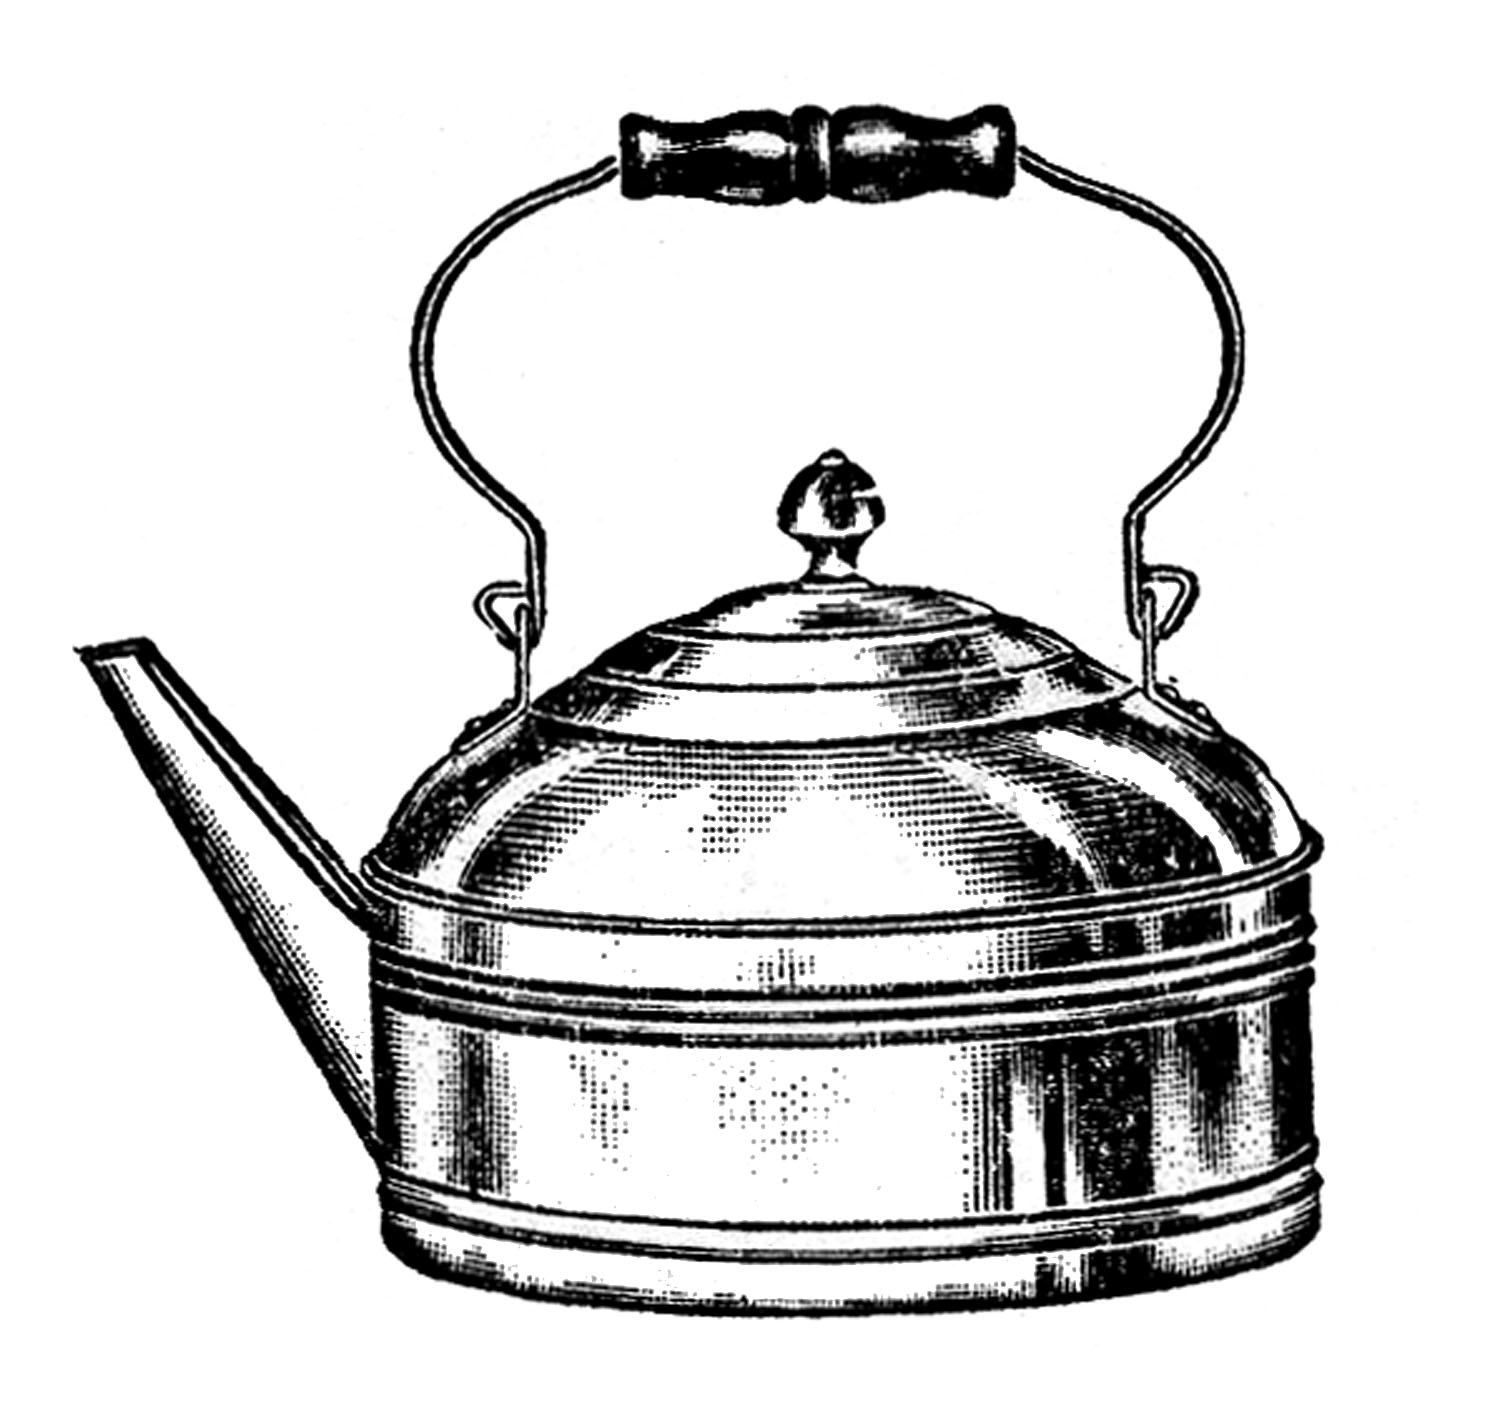 Vintage Kitchen Clip Art - Tea Kettle and Coffee Pots - The ...